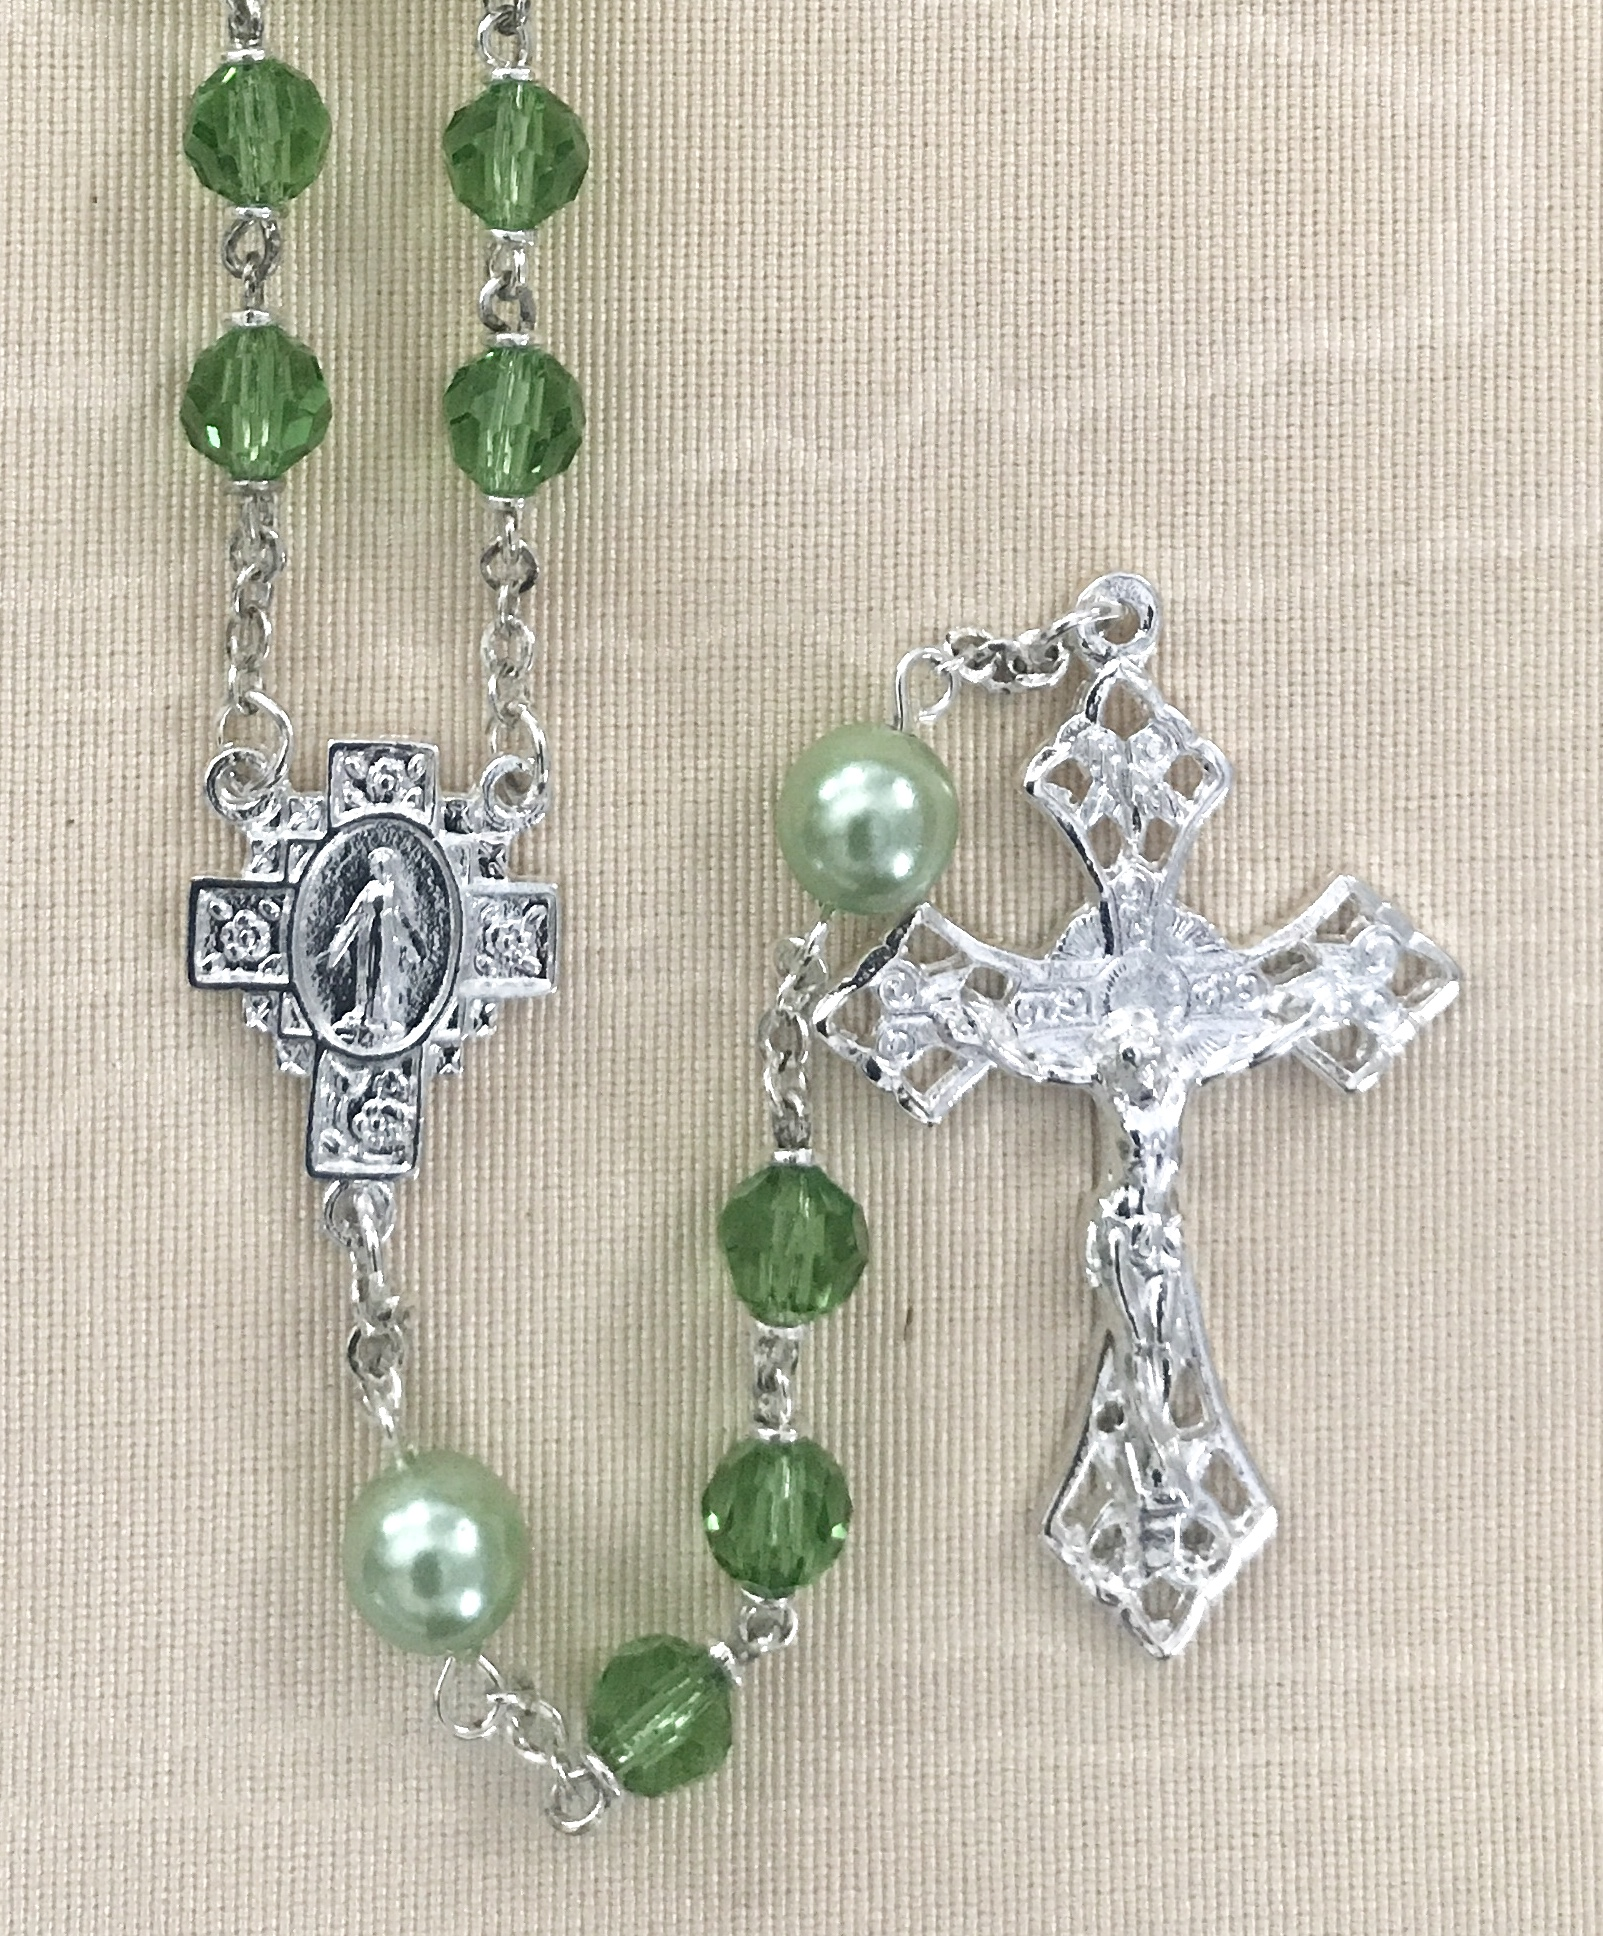 6mm PERIDOT TIN CUT WITH PEARL OUR FAHTER BEADS STERLING SILVER PLATED ROSARY GIFT BOXED